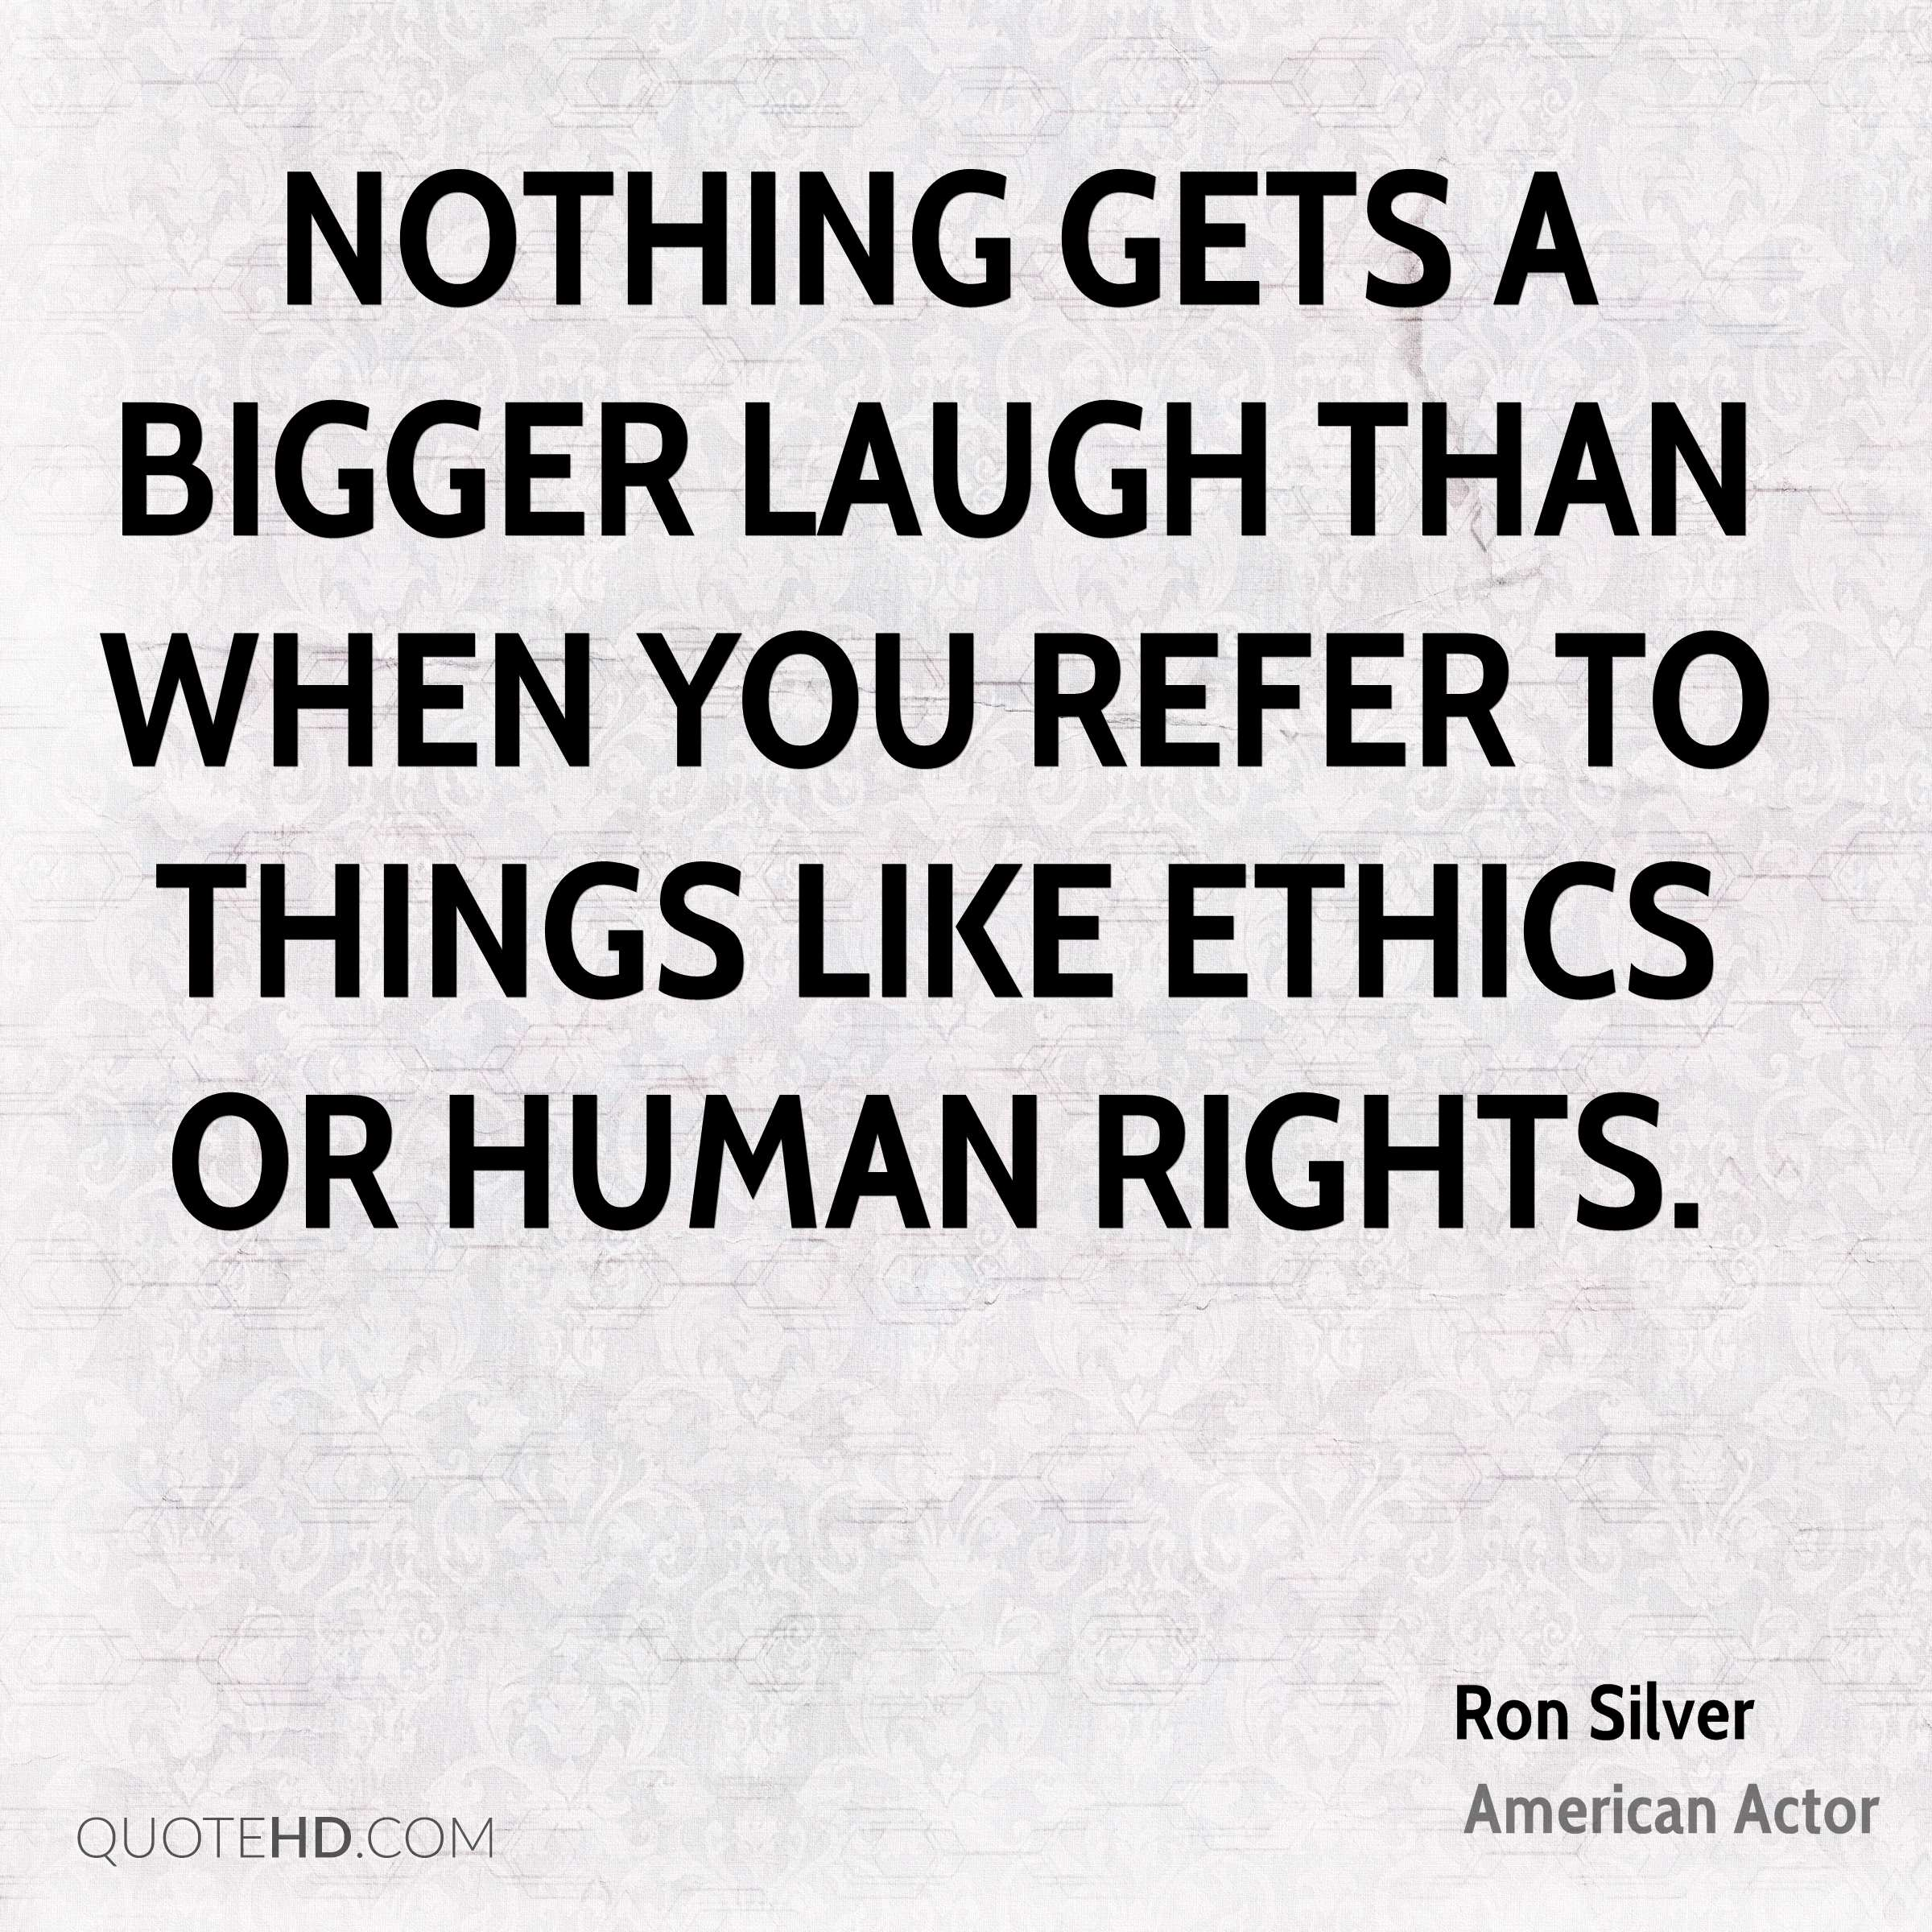 Nothing gets a bigger laugh than when you refer to things like ethics or human rights.